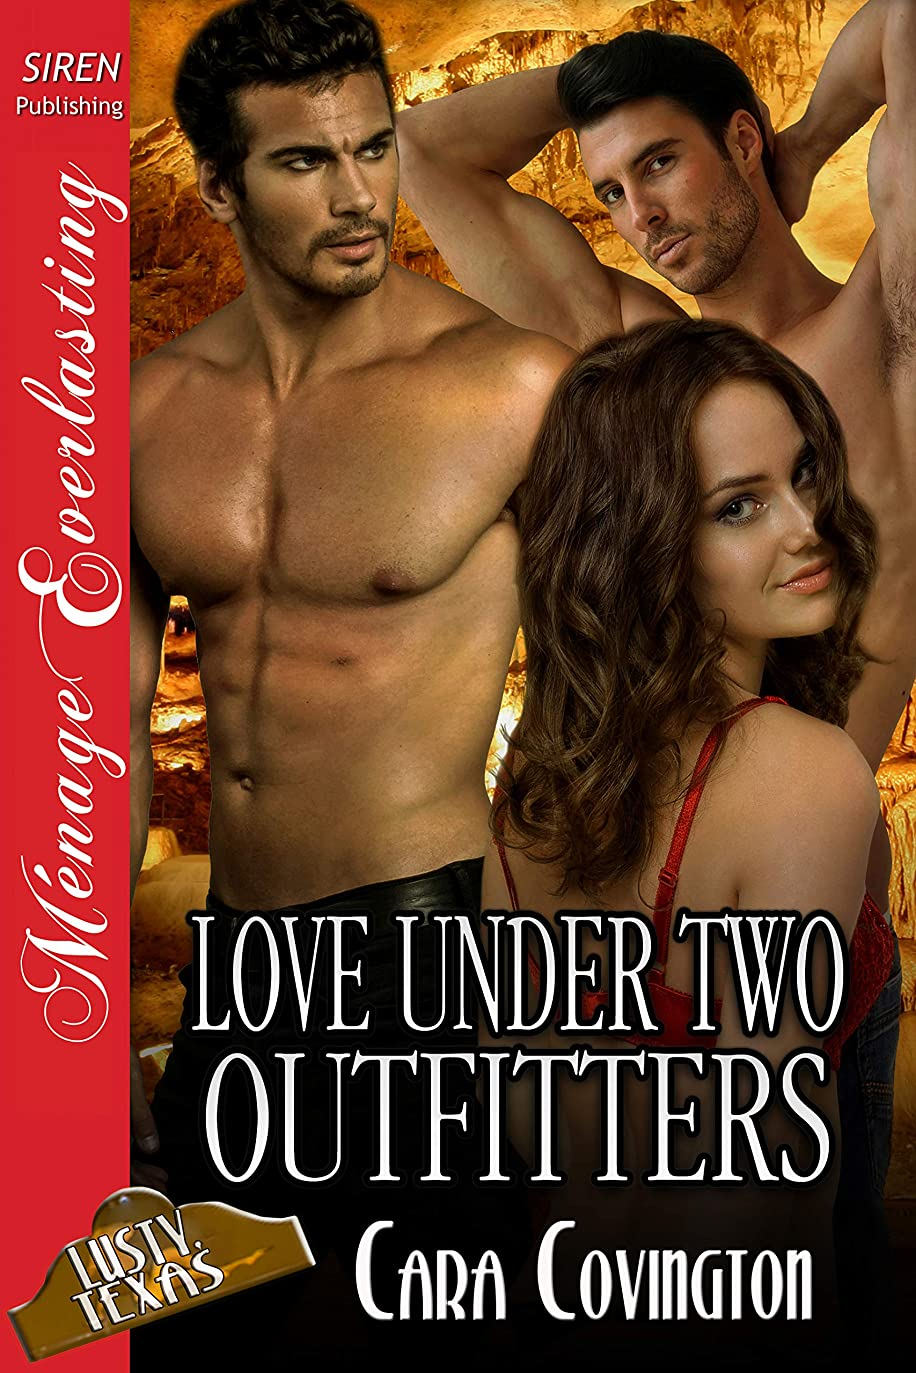 拾う構成員せがむLove Under Two Outfitters [The Lusty, Texas Collection] (Siren Publishing Menage Everlasting) (English Edition)